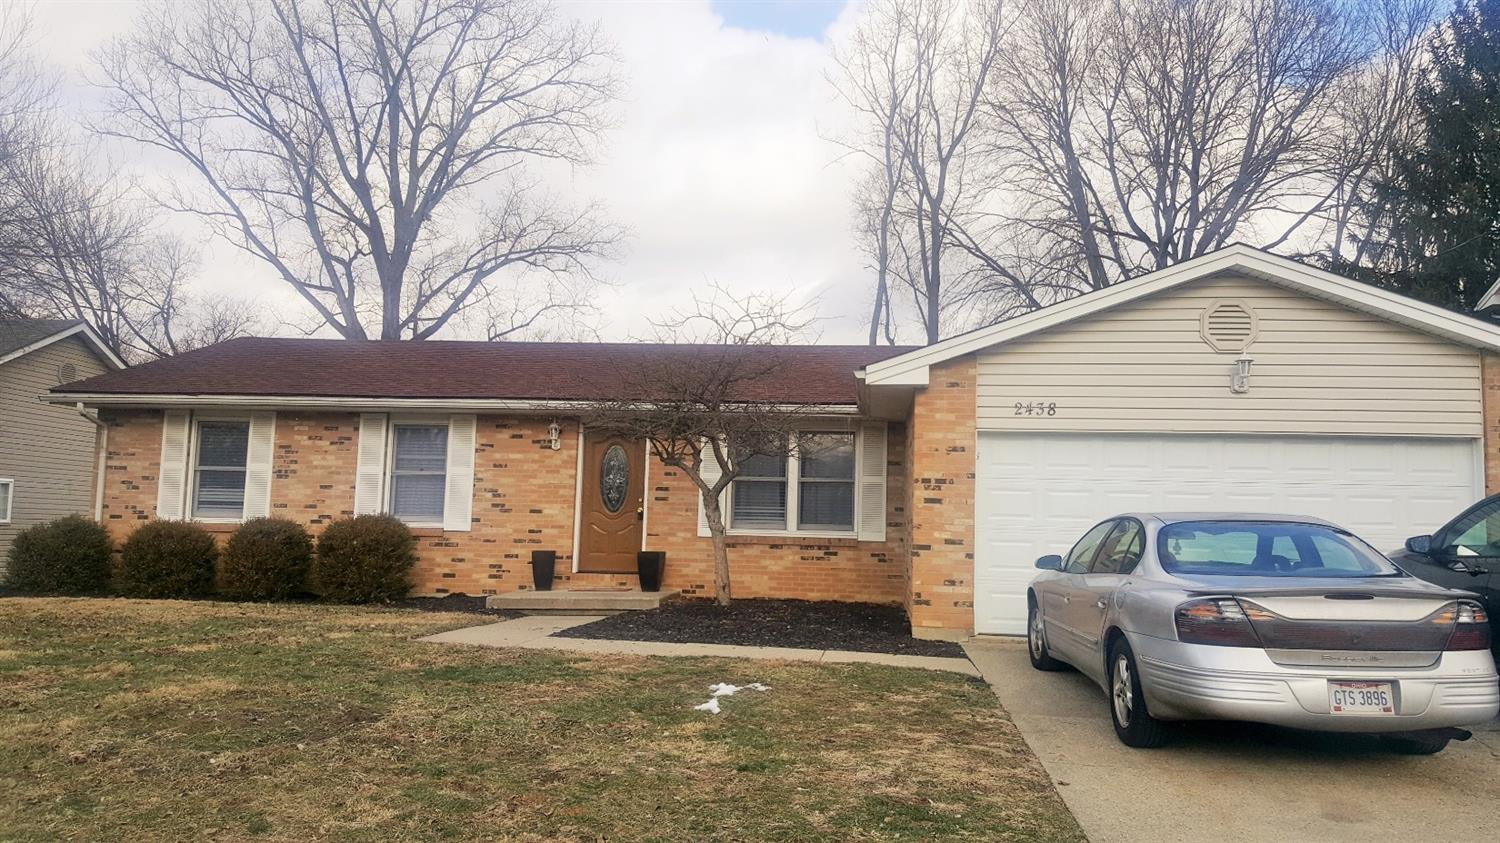 Property for sale at 2438 Trinity Drive, Turtle Creek Twp,  OH 45044